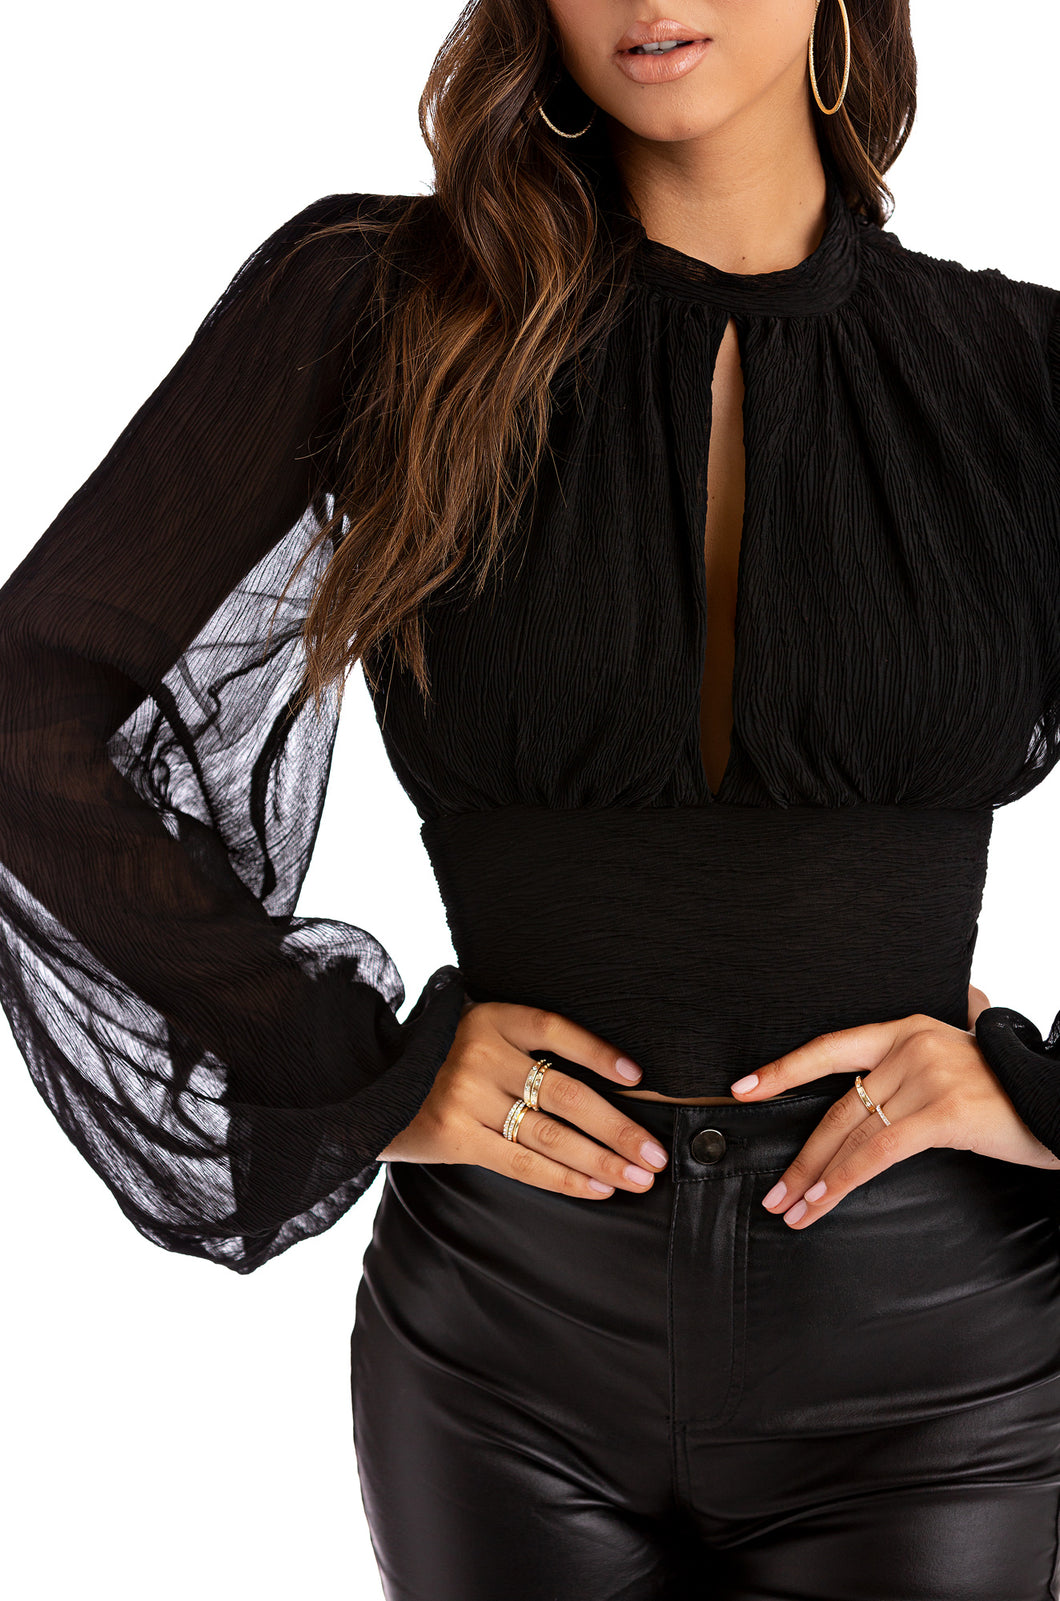 Law Of Attraction Top - Black